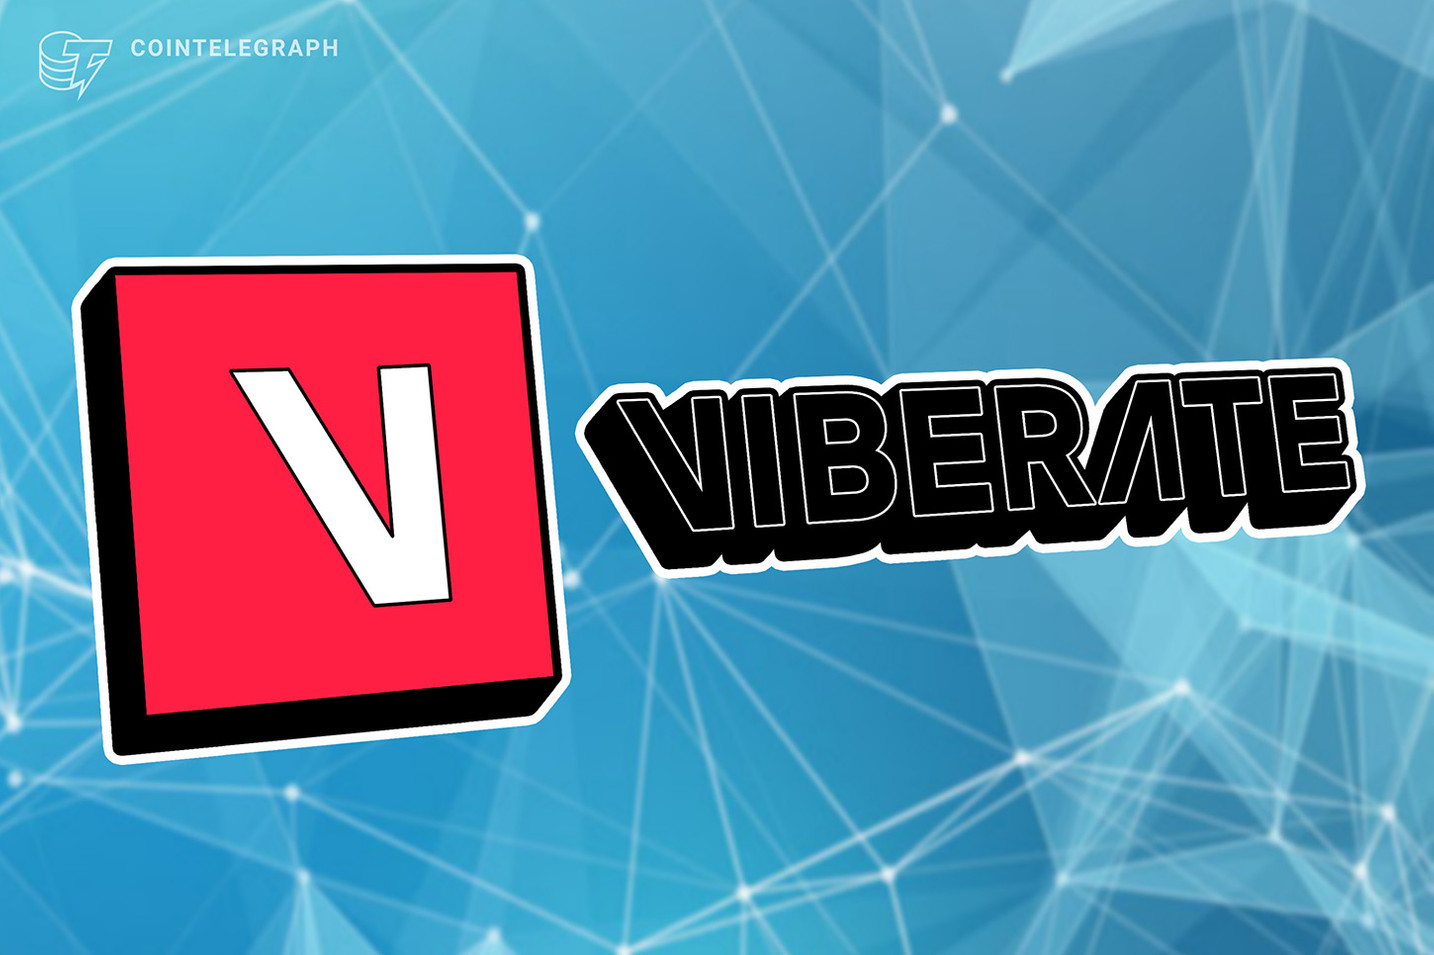 Viberate is the first to tokenize live performances